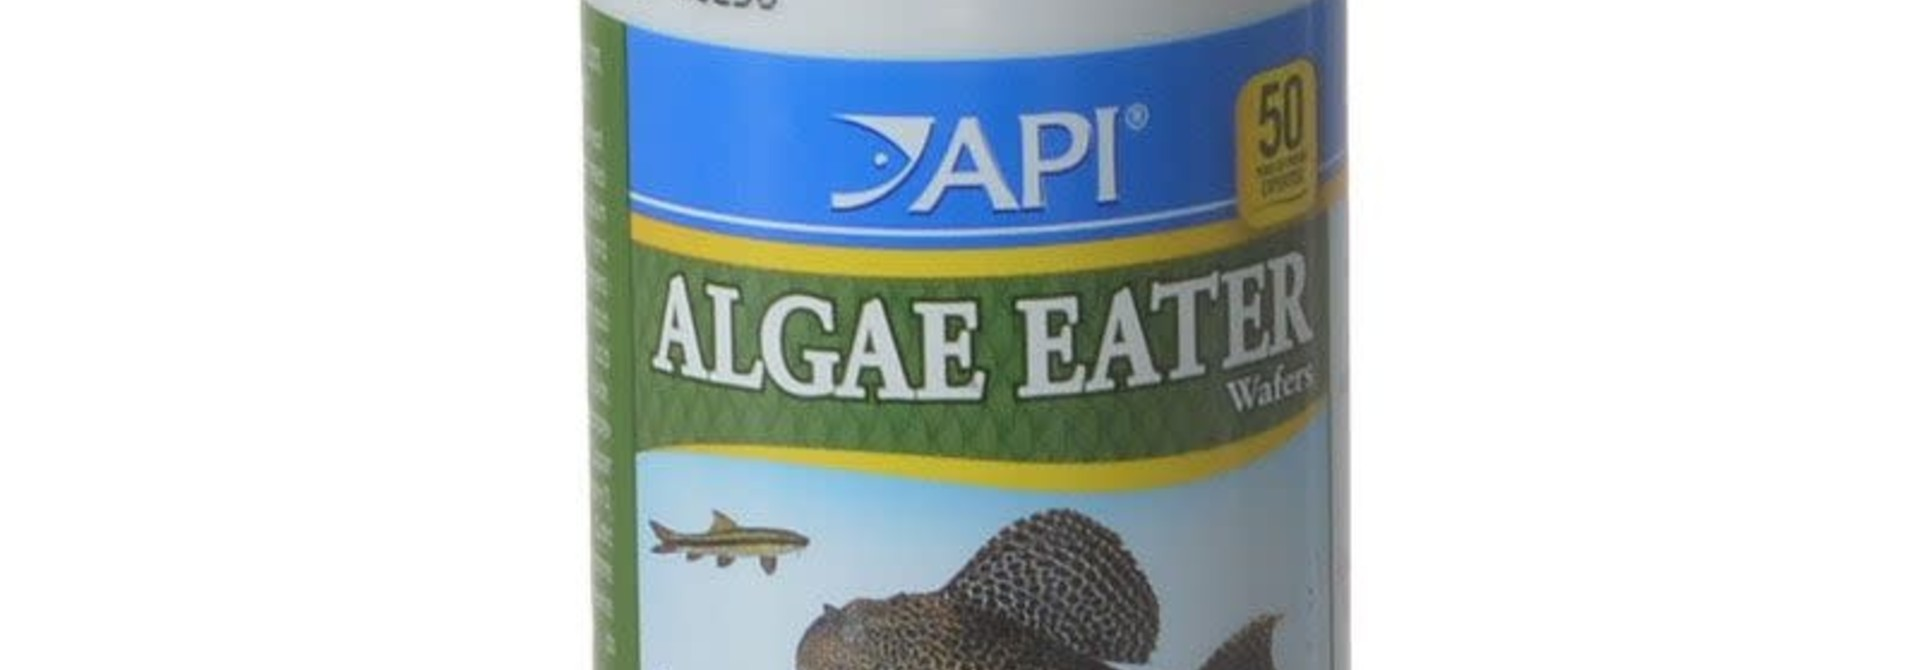 API Algae Eater Wafers 1.3oz